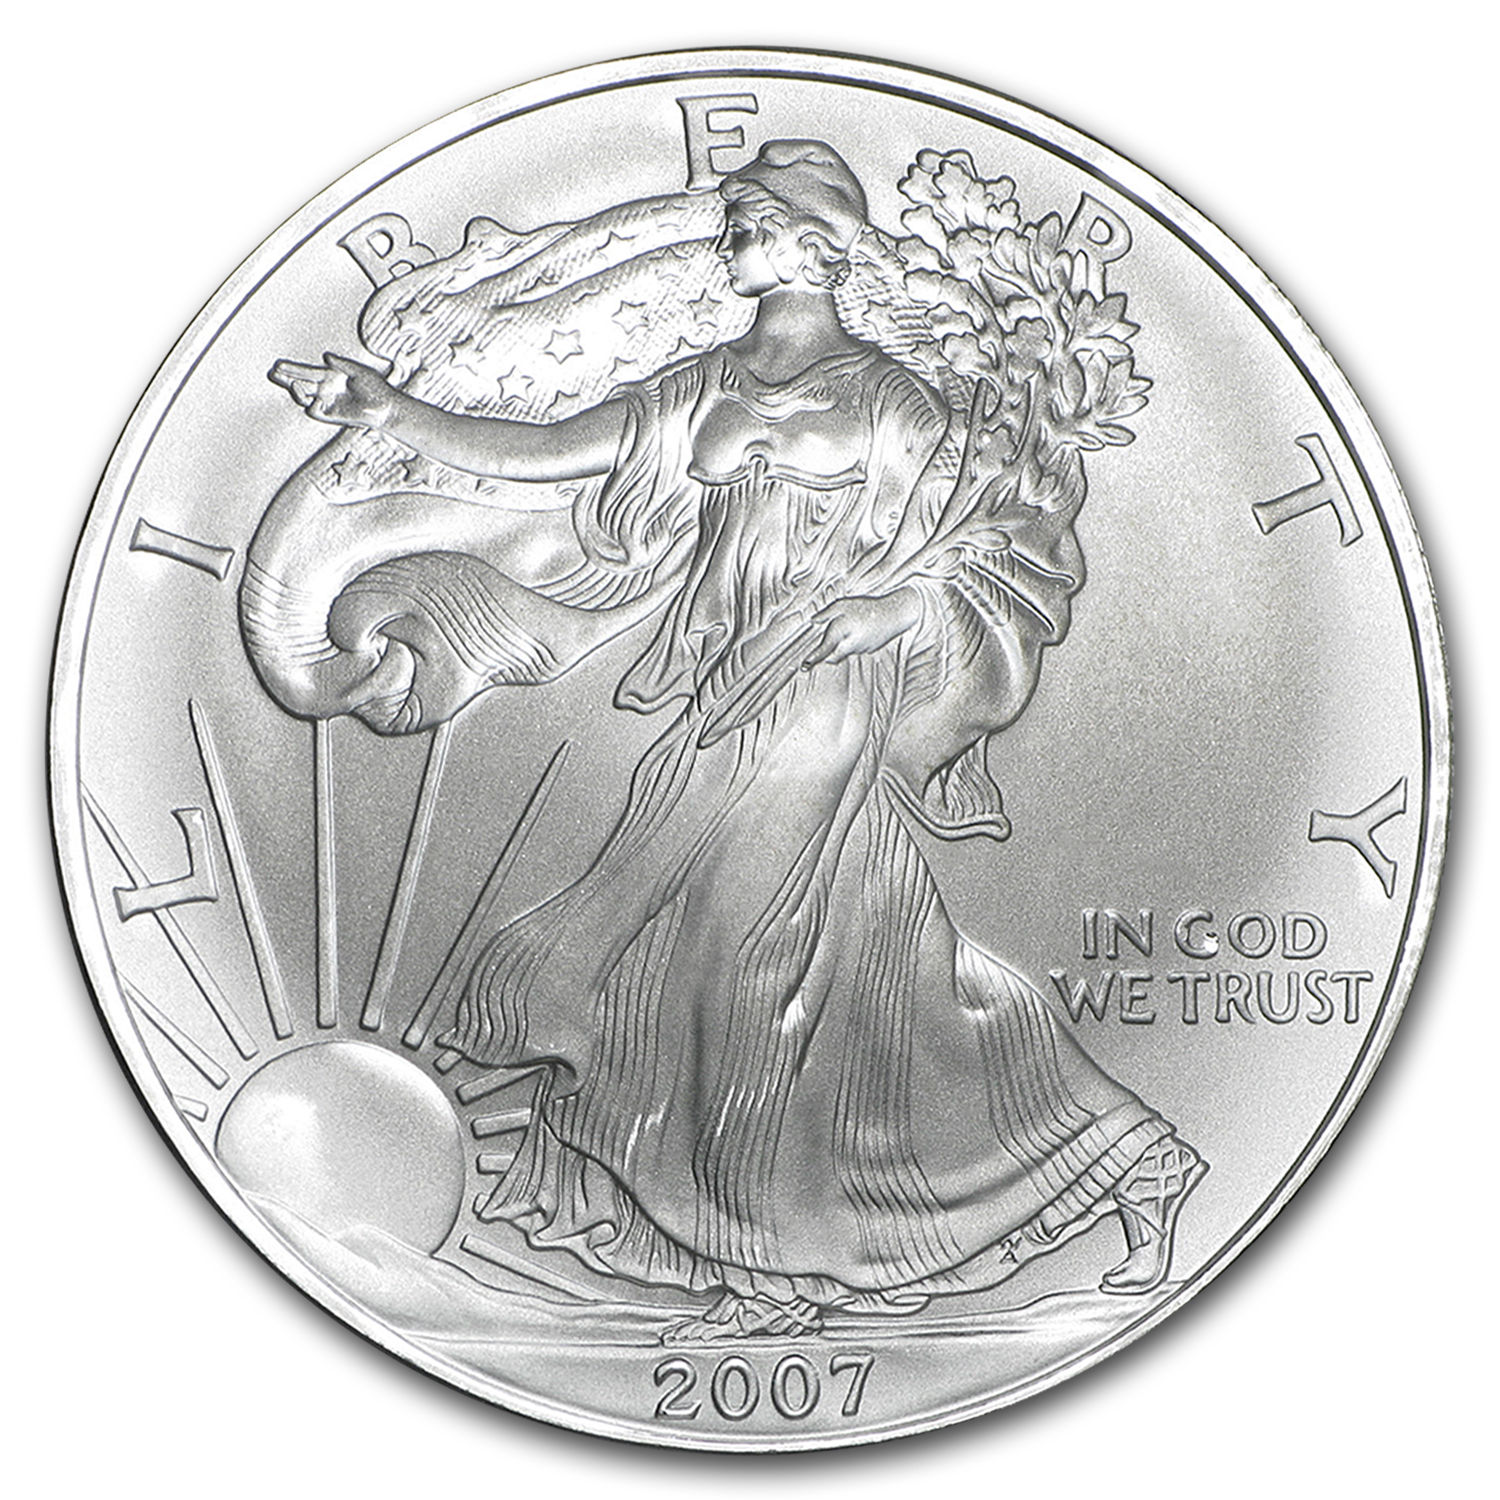 2007 1 oz Silver American Eagles (20-Coin MintDirect® Tube)